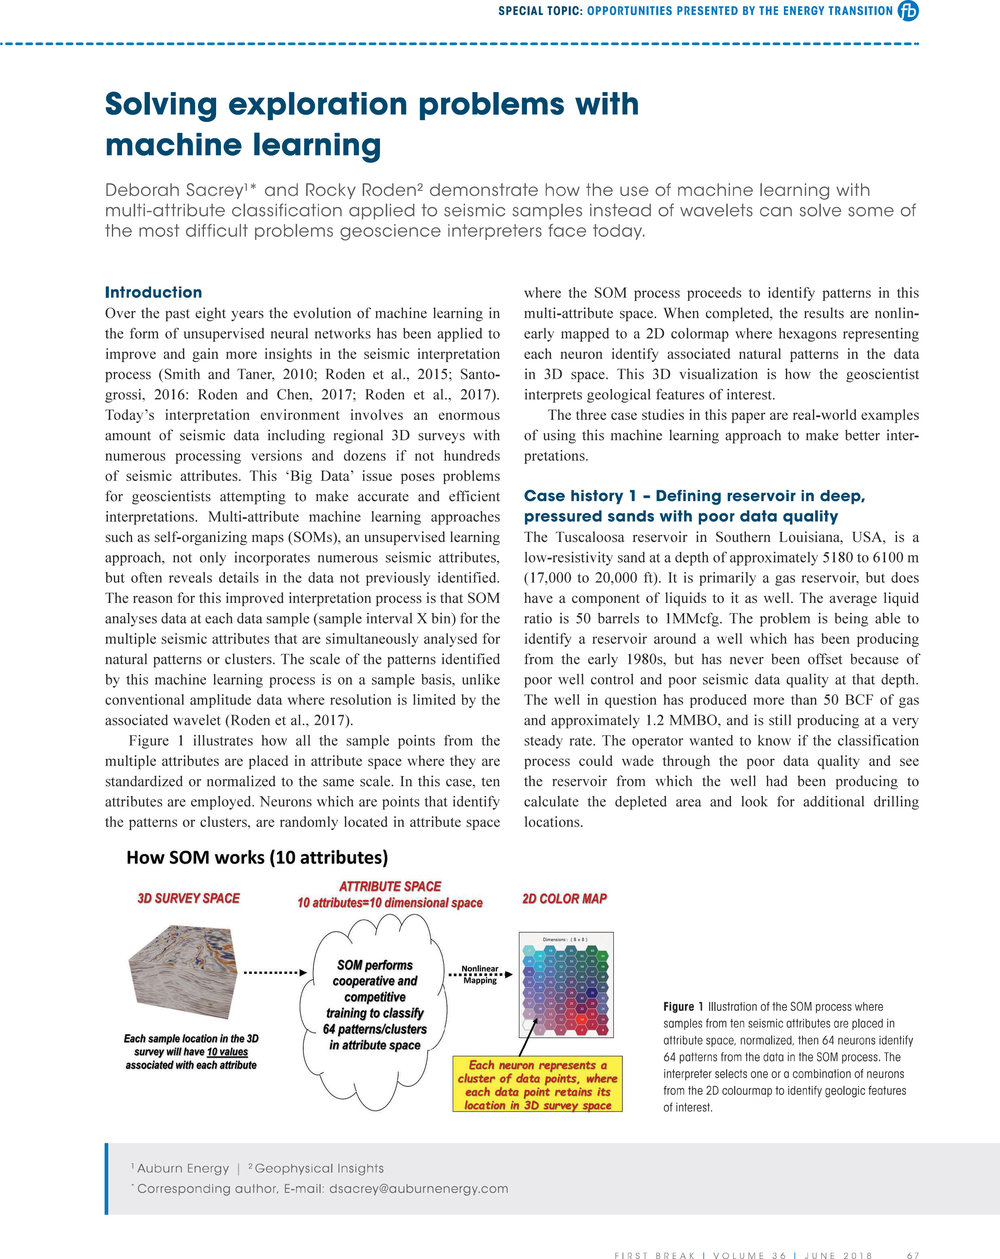 Solving Exploration Problems with Machine Learning by Deborah Sacrey and Rocky Roden